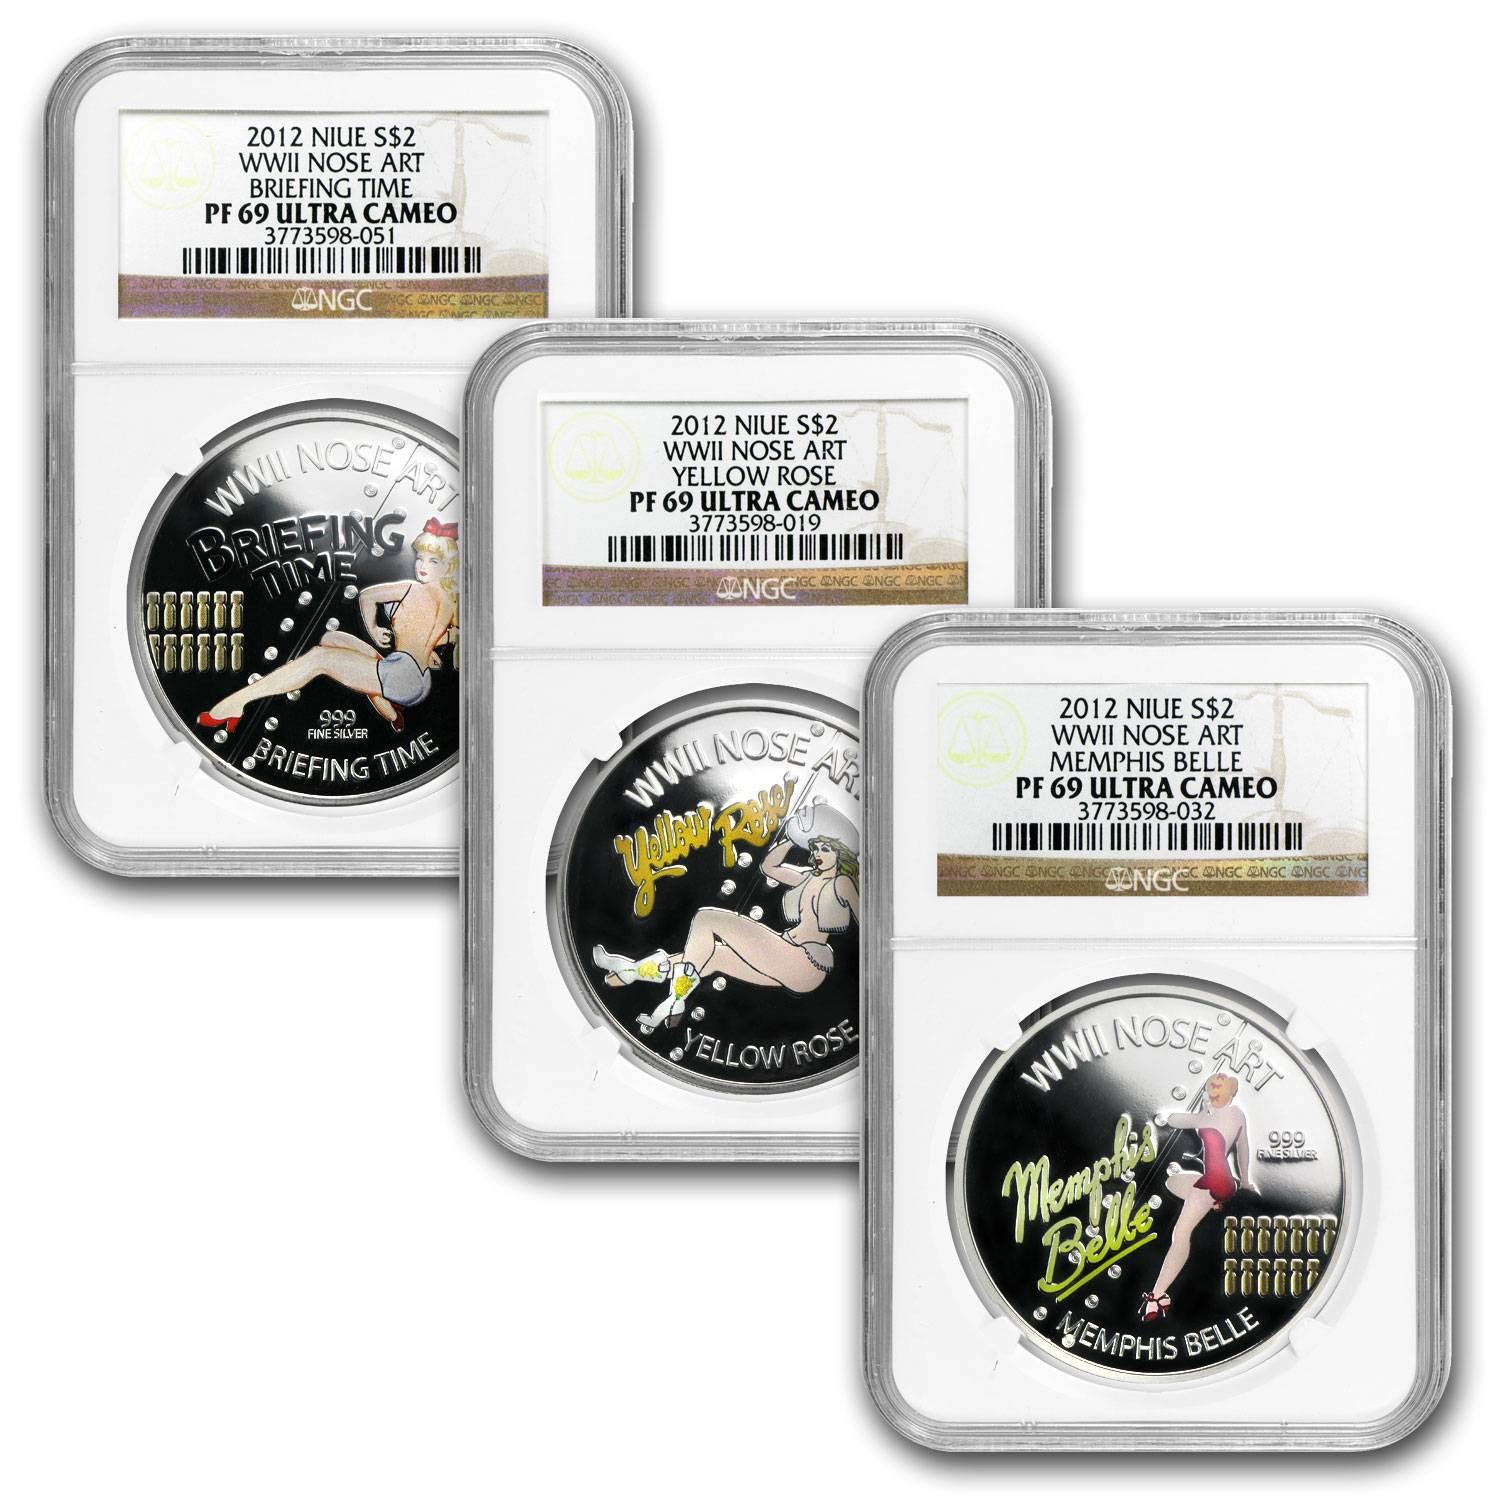 2012 Niue 3x 1 oz Silver $2 WWII Nose Art Set PF-69 NGC